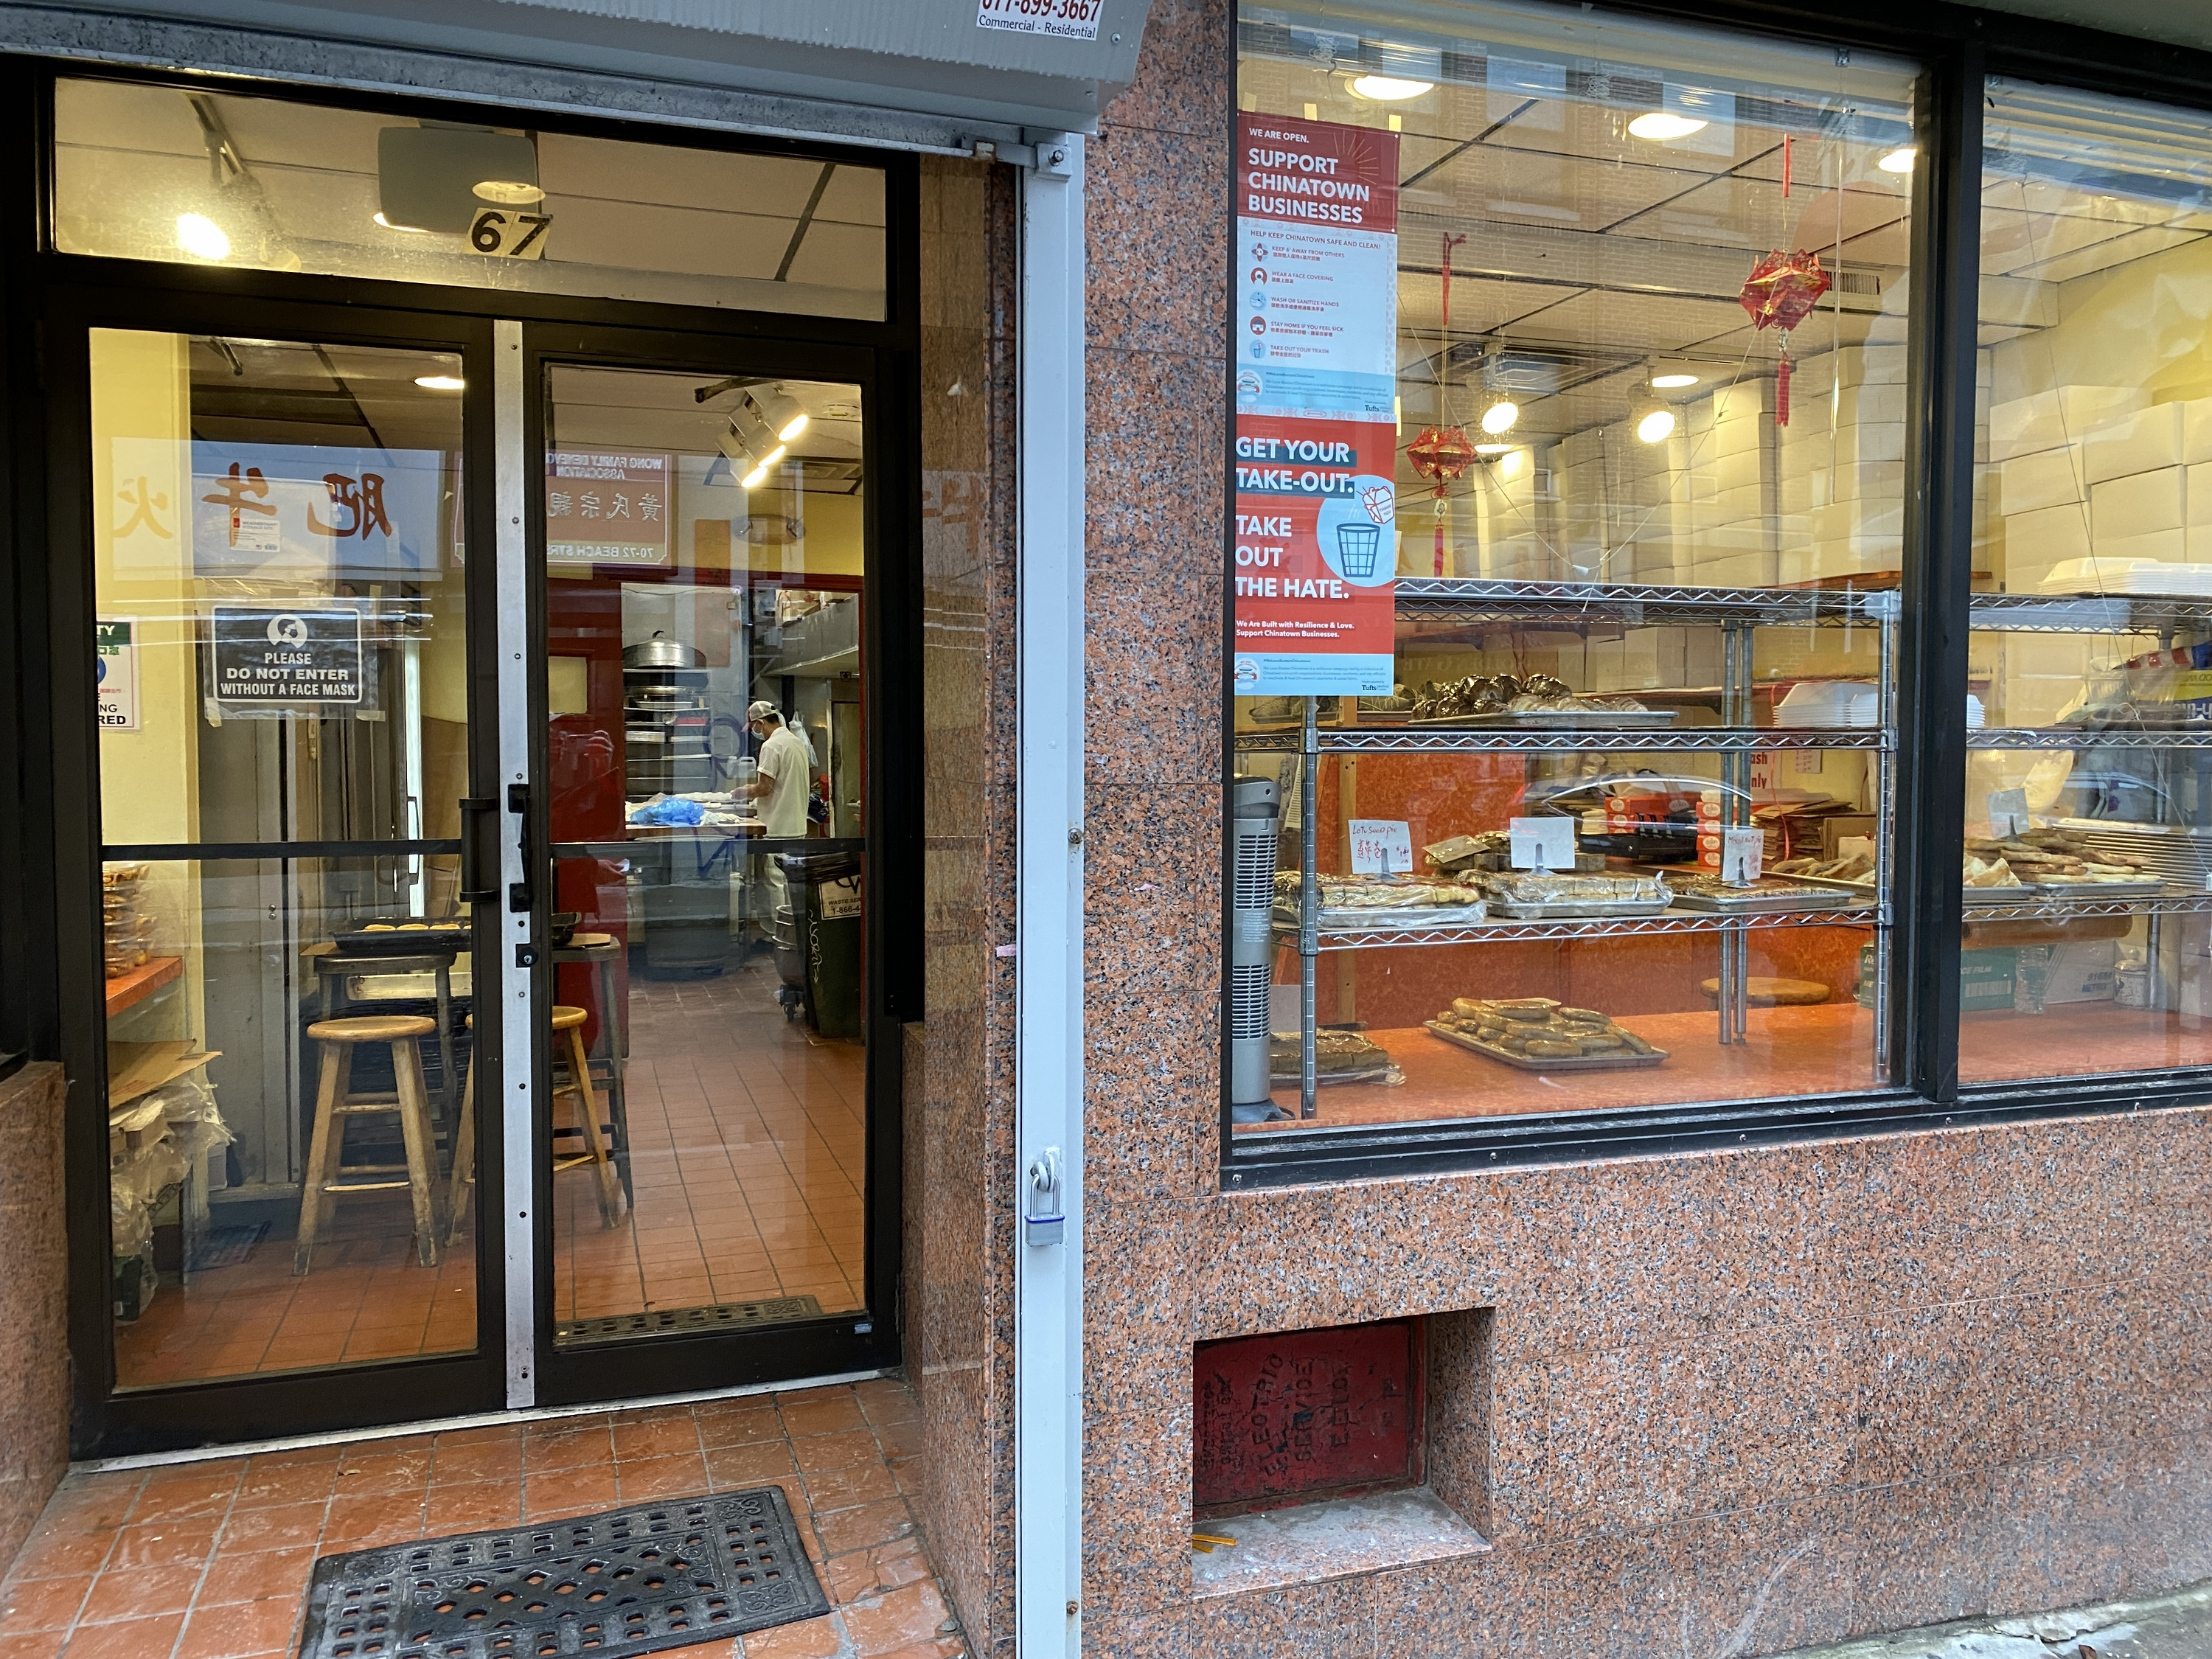 Bakery in Chinatown - the items are still hand made in the bakery.